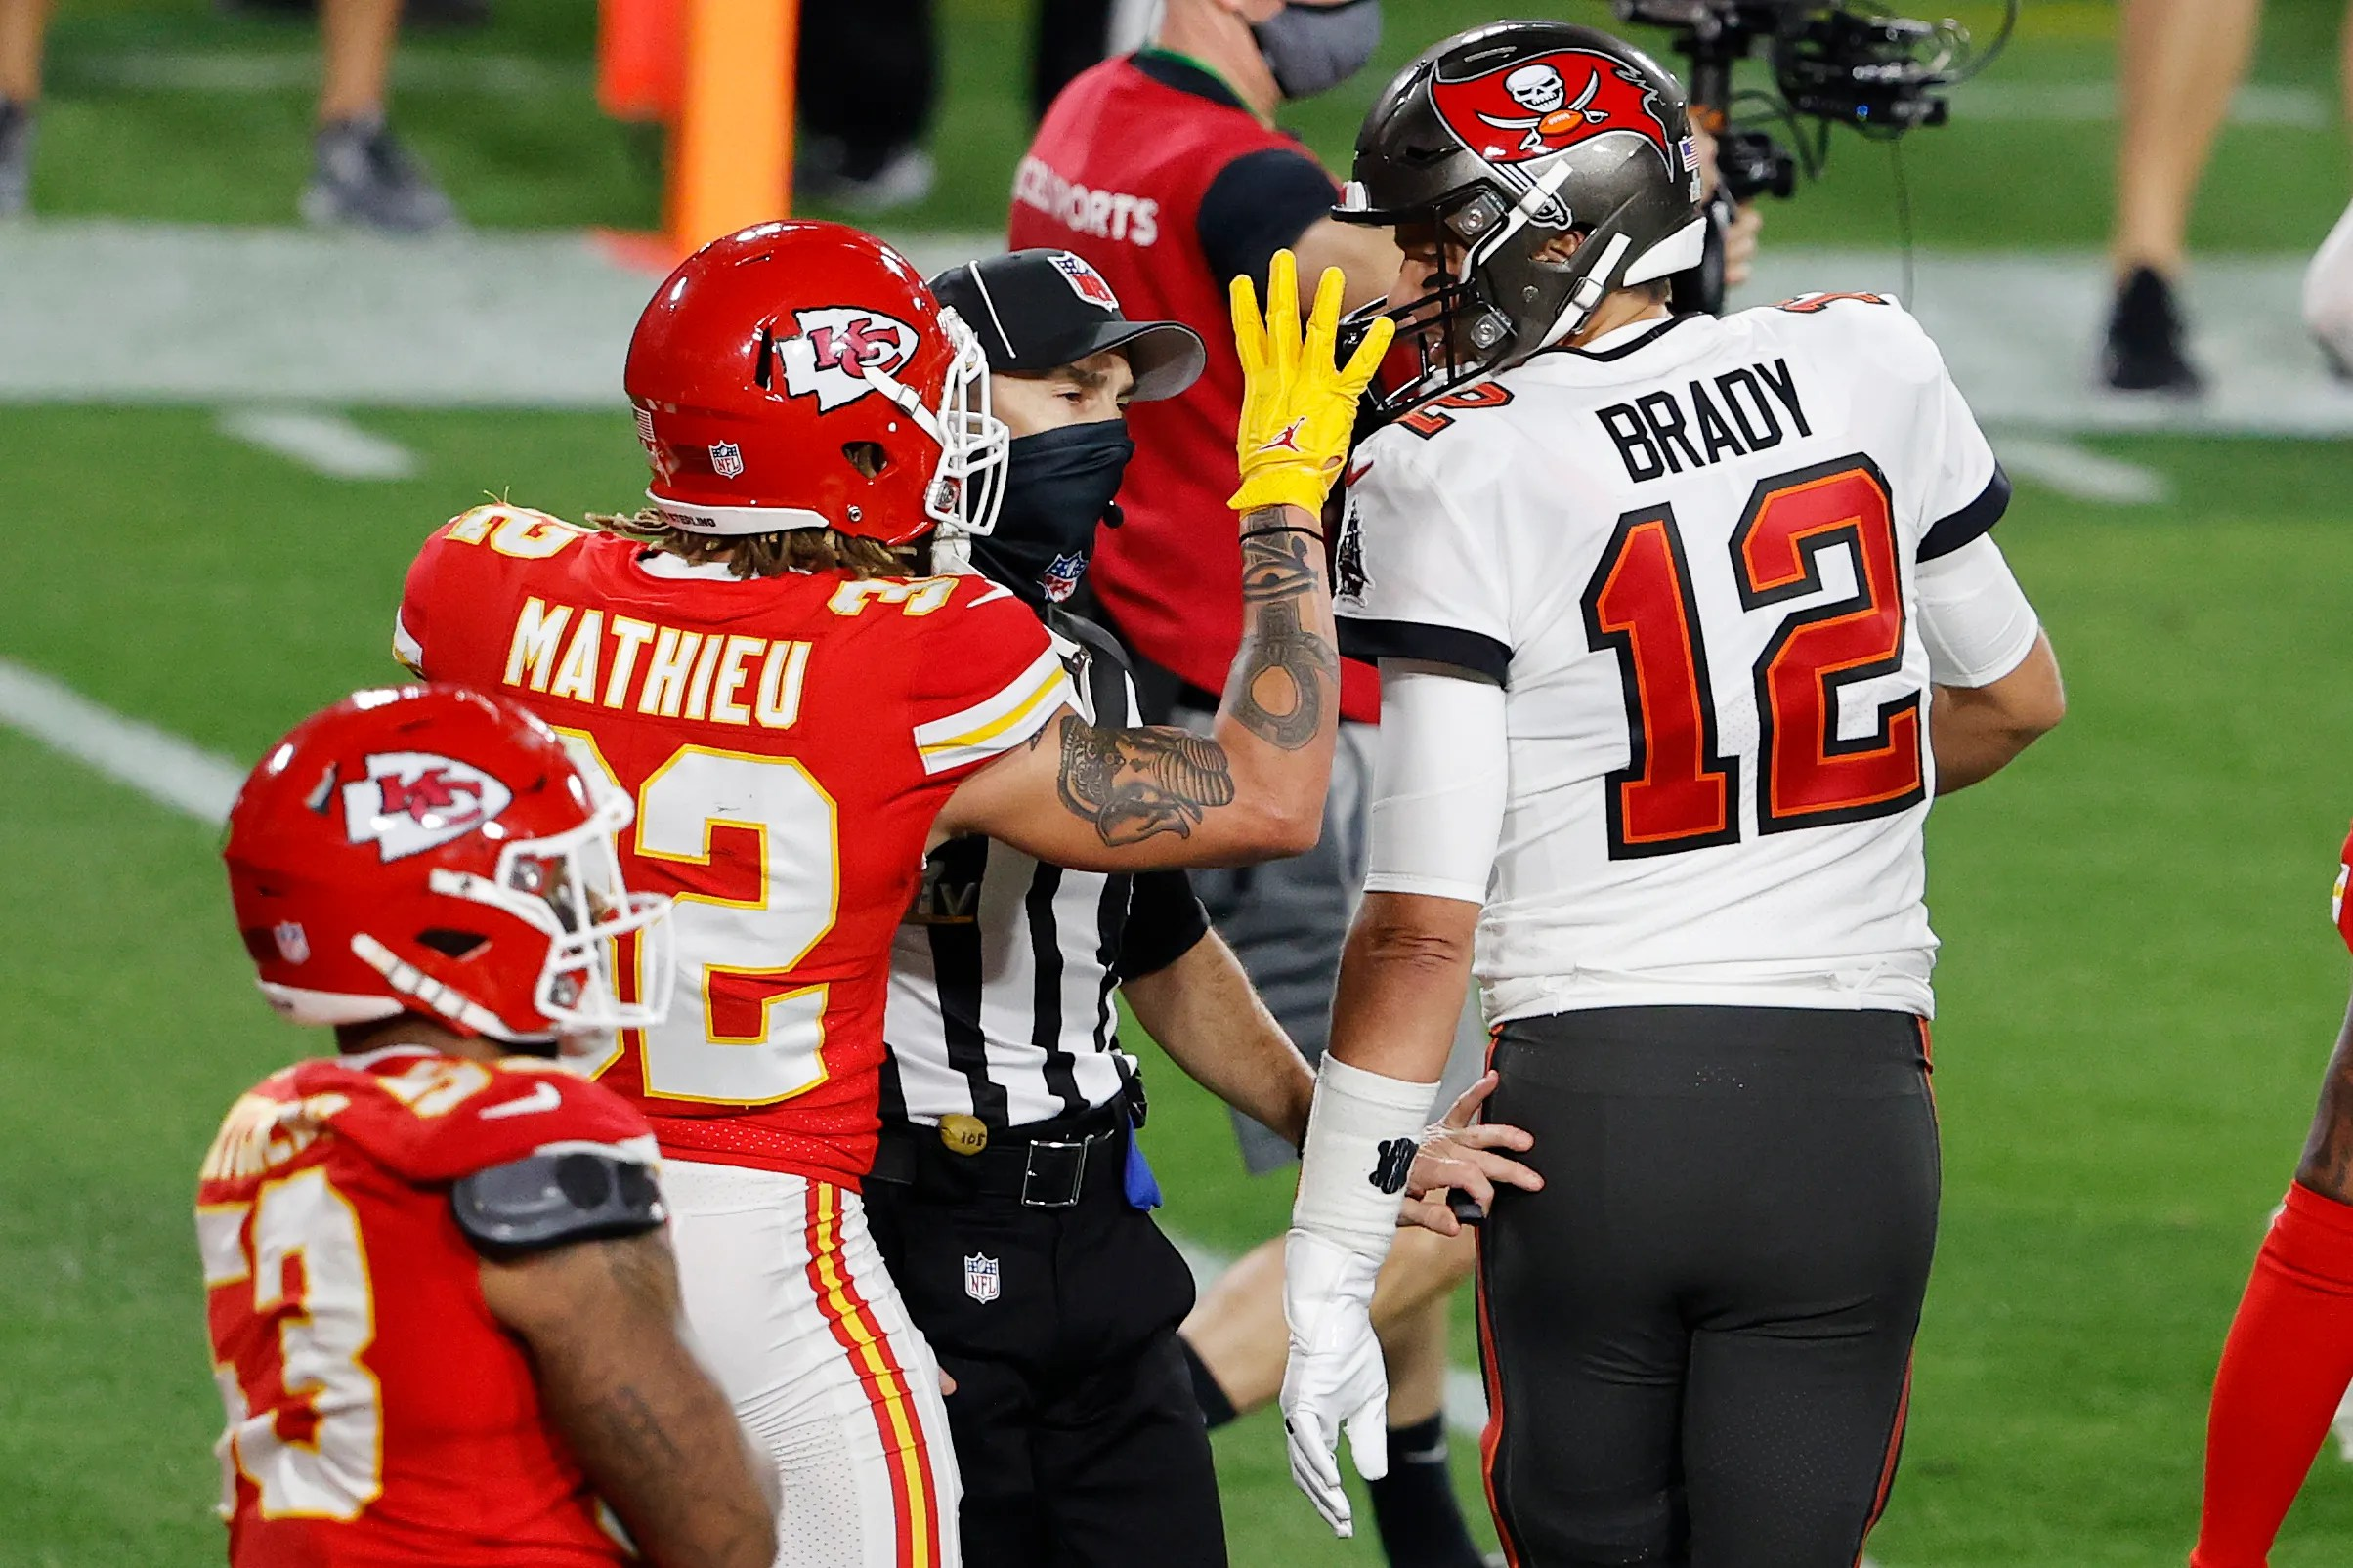 A NFL official moves in to separate Tampa Bay Buccaneers quarterback Tom Brady (12) and Kansas City Chiefs strong safety Tyrann Mathieu (32) during the second quarter of Super Bowl LV at Raymond James Stadium.